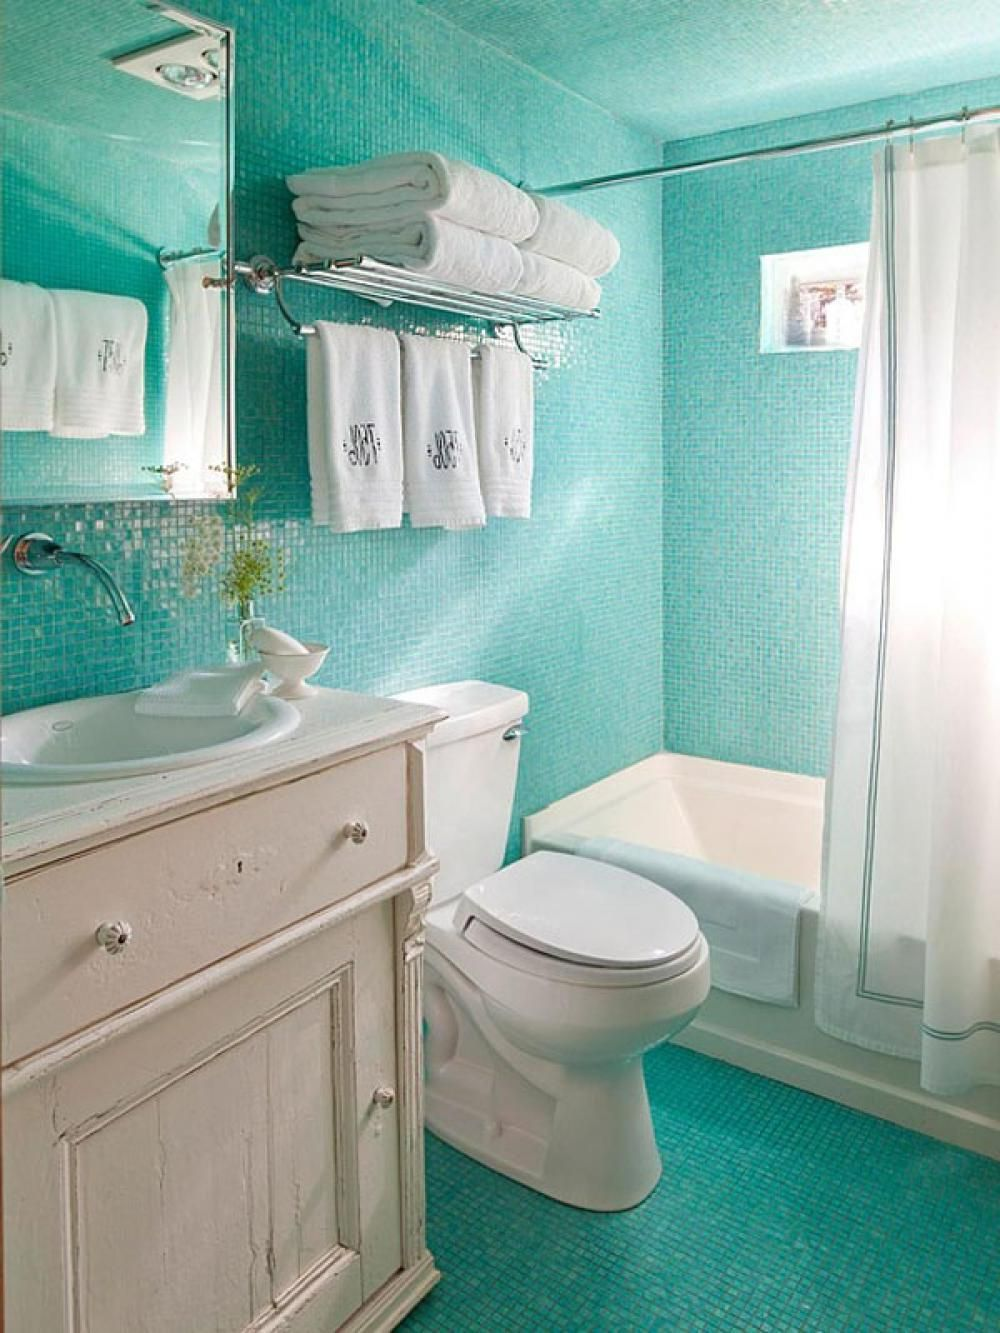 Tiffany blue bathroom designs - Chic Turquoise Mosaic Tiles Ocean Inspired Bathroom With White Vintage Bathroom Vanity And Built In